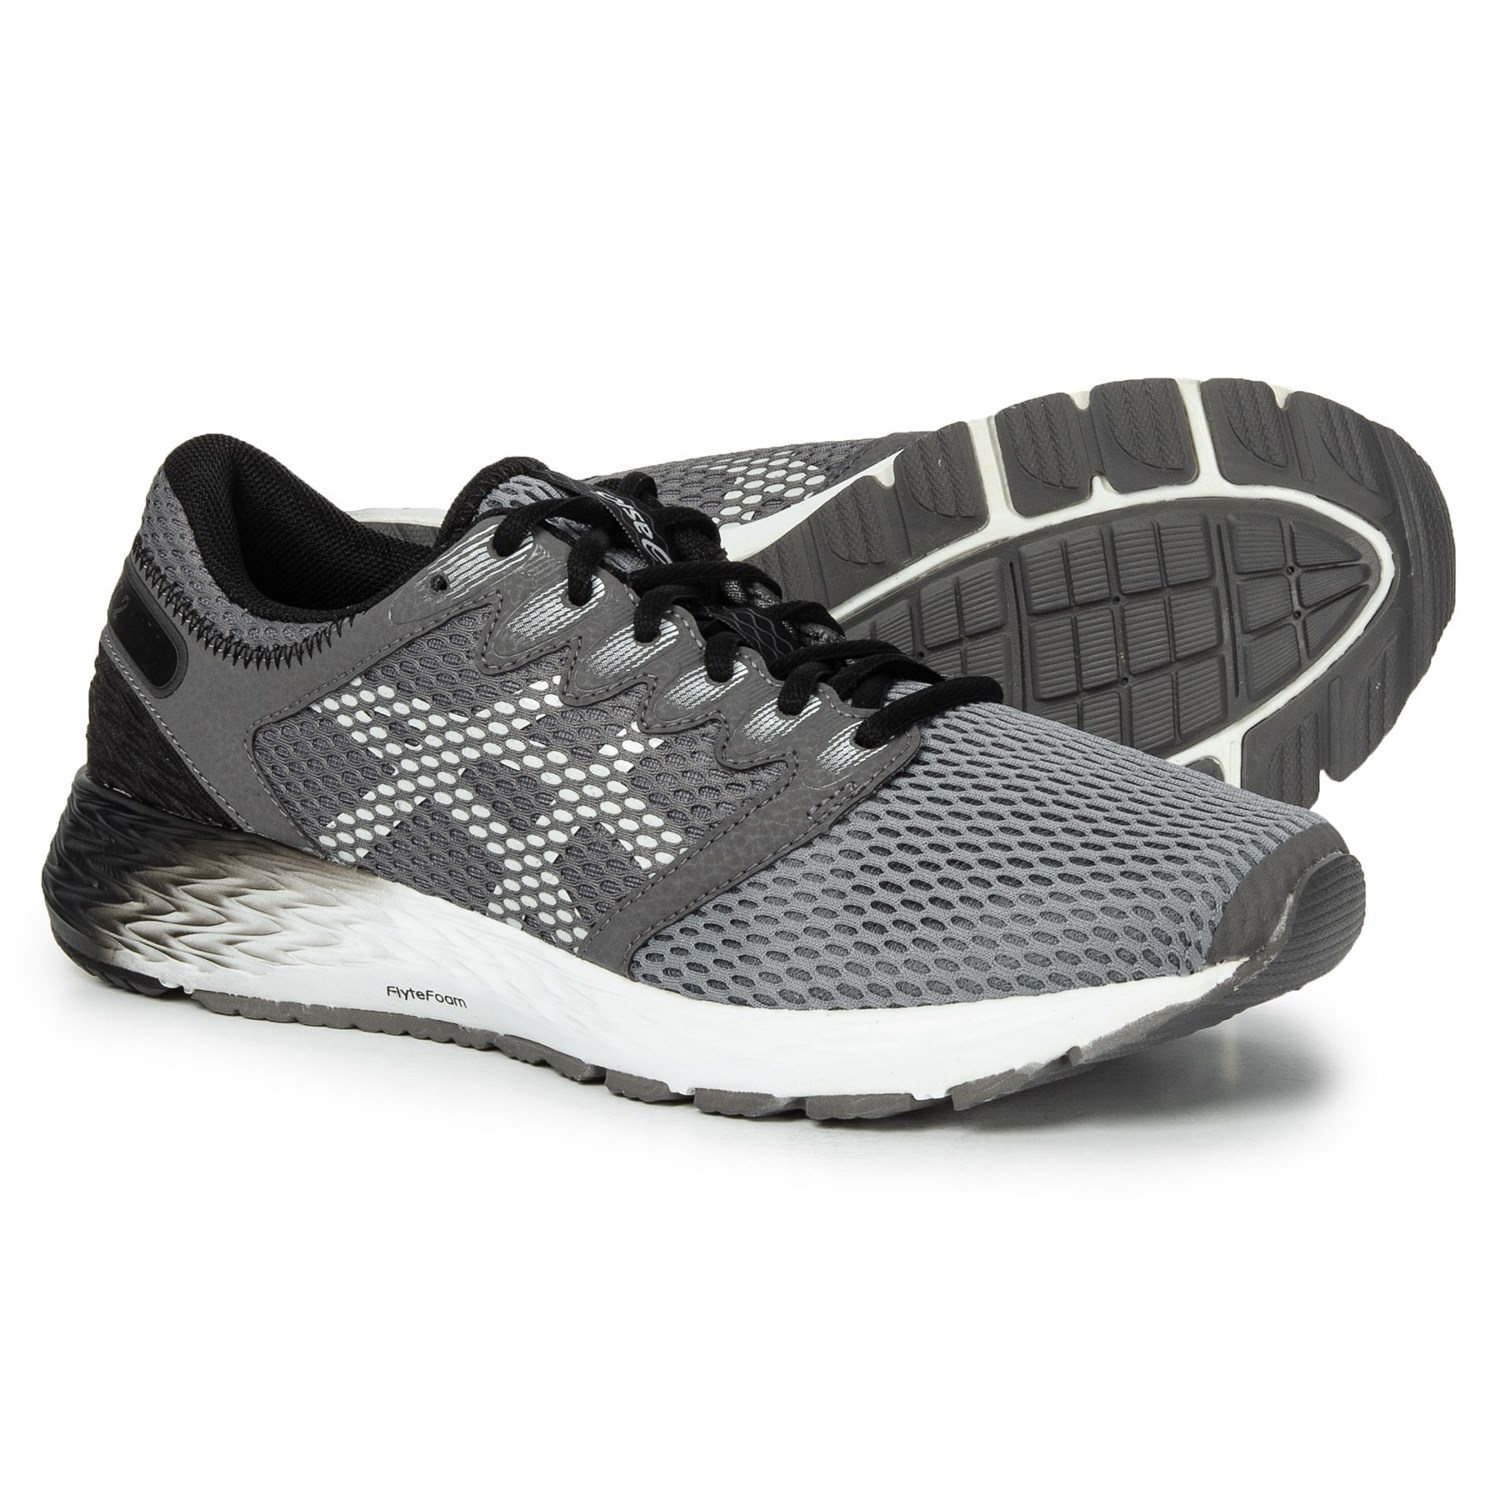 ASICS Roadhawk FF 2 Running Shoes (For Men)